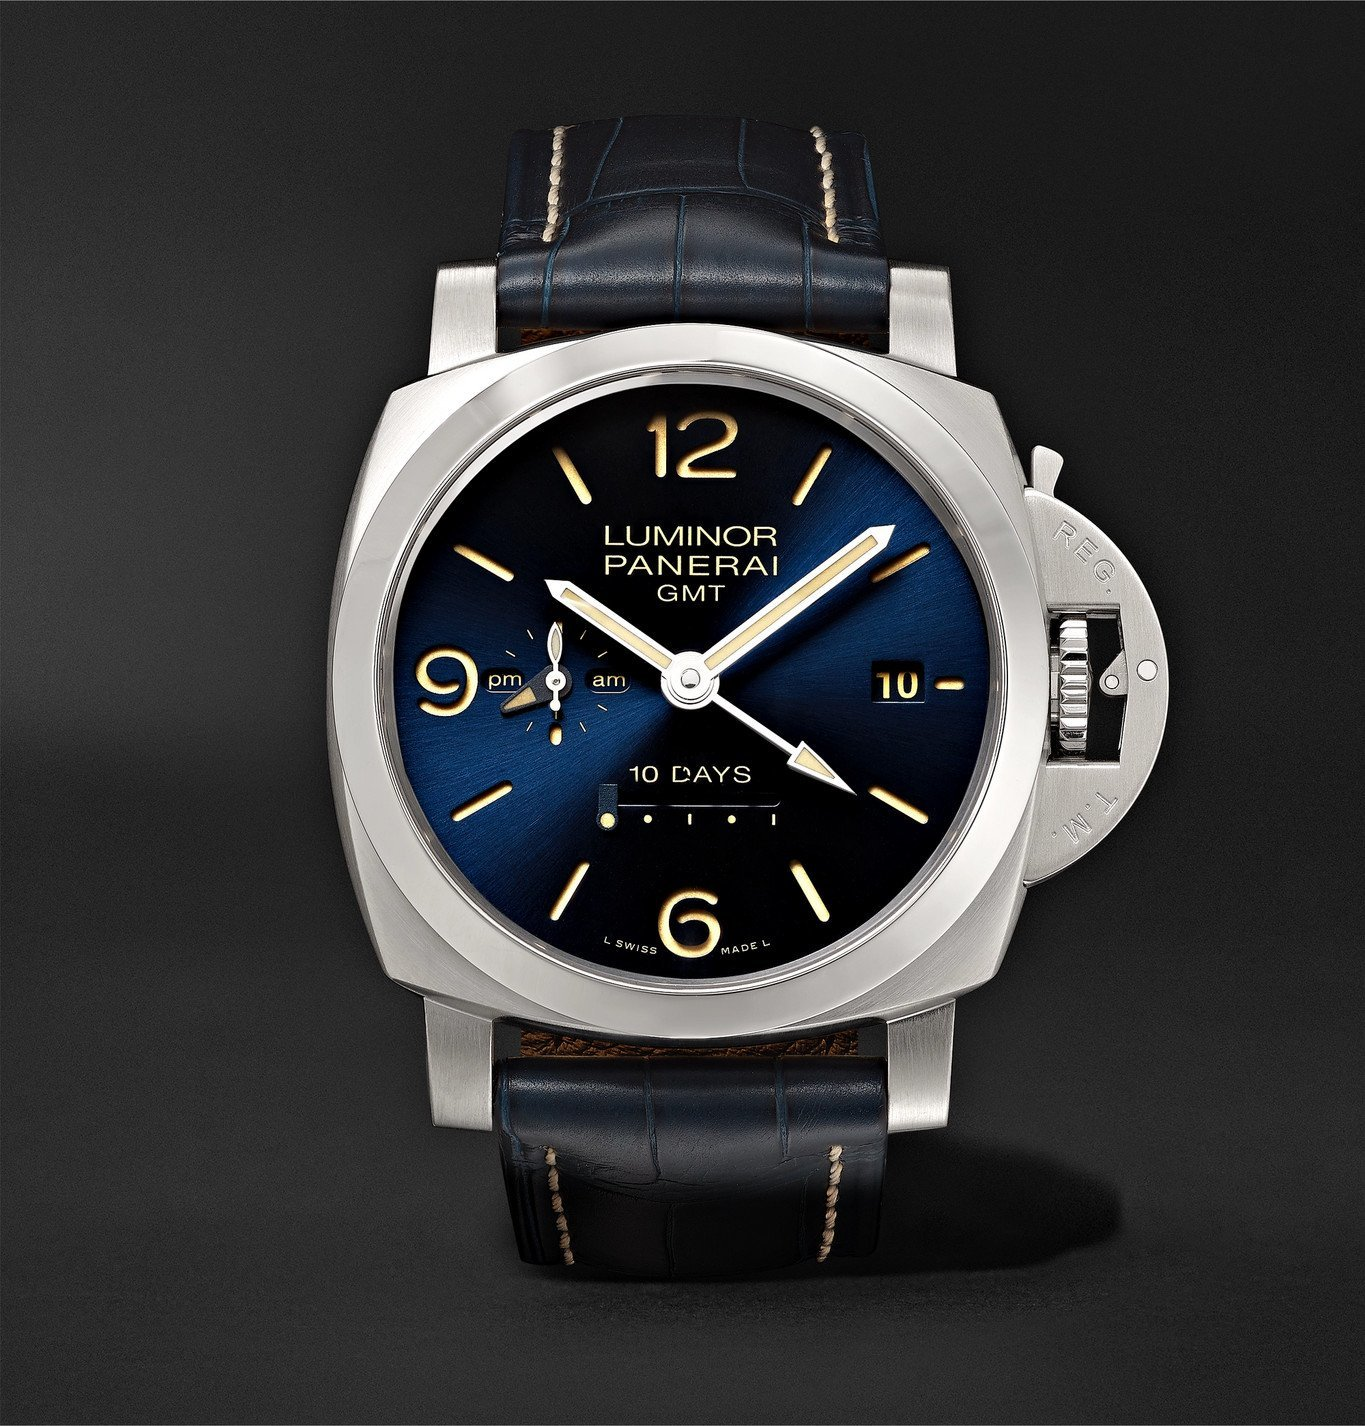 Photo: Panerai - Luminor 1950 10 Days GMT Automatic 44mm Stainless Steel and Alligator Watch, Ref. No. PNPAM00986 - Blue